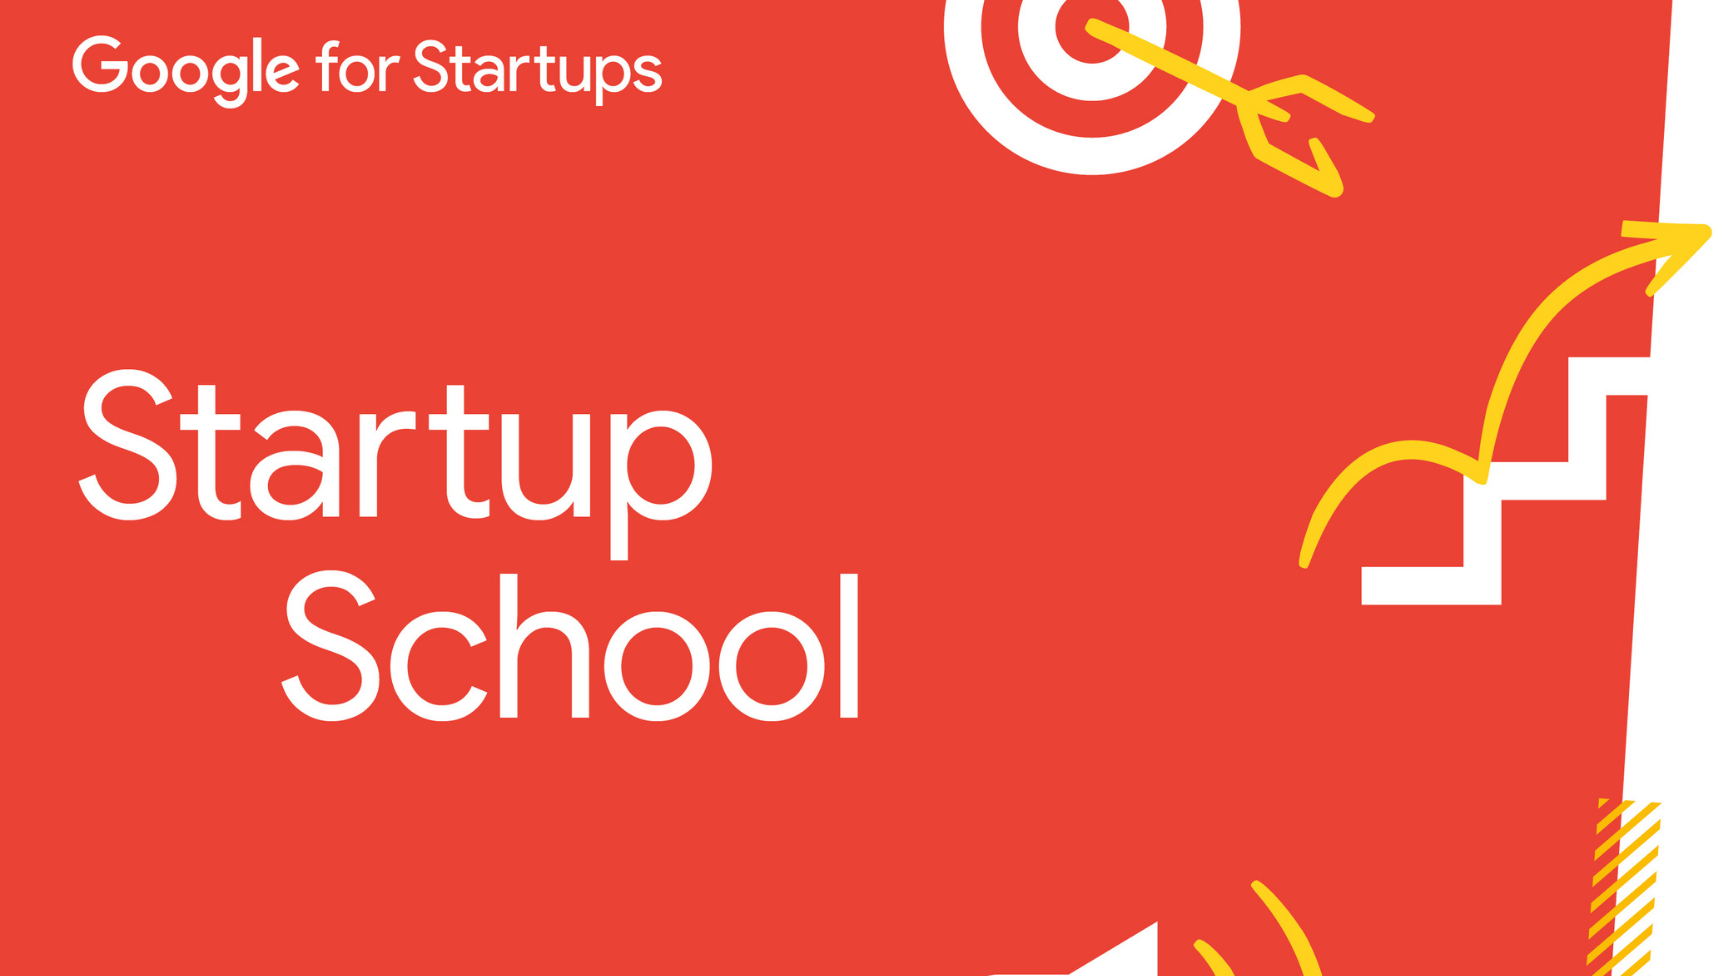 Google Startup School: Getting started with Google Ads